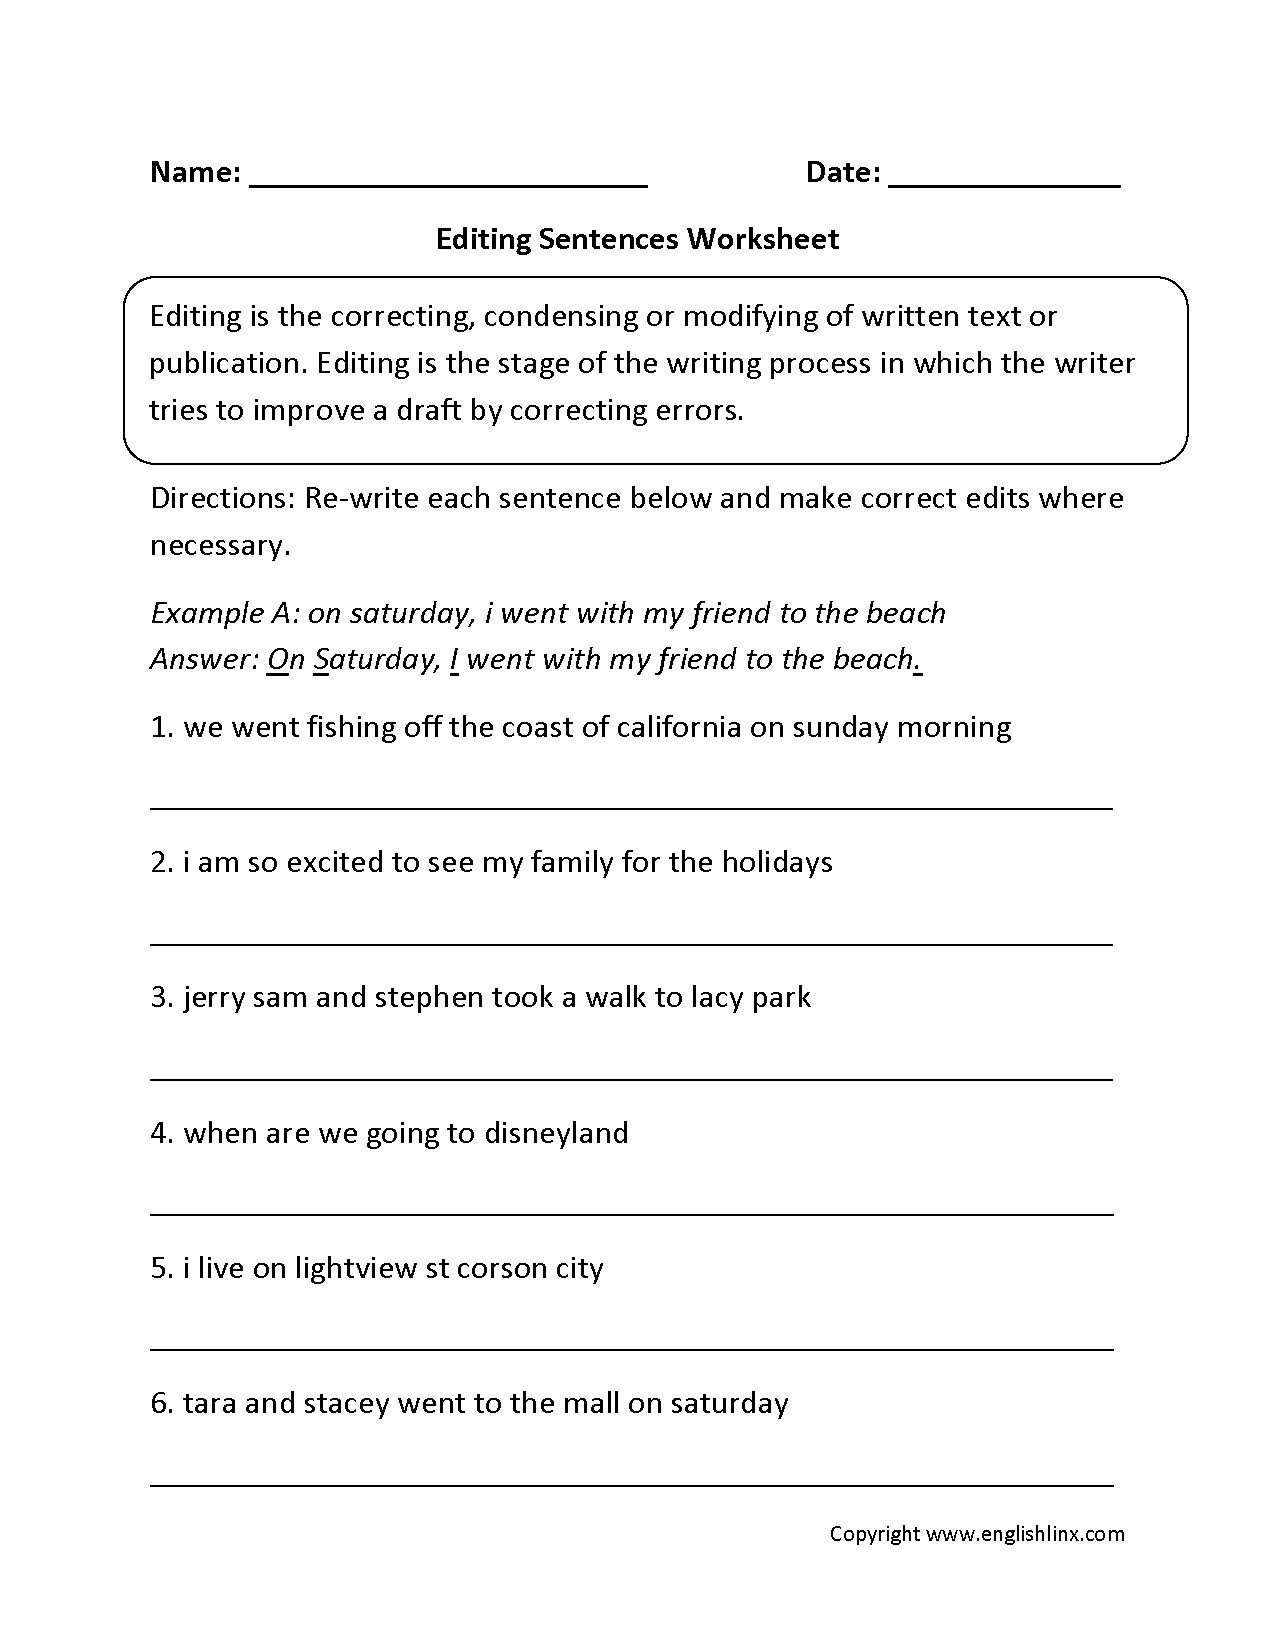 Third Grade Editing Worksheets Editing Worksheet Sentece